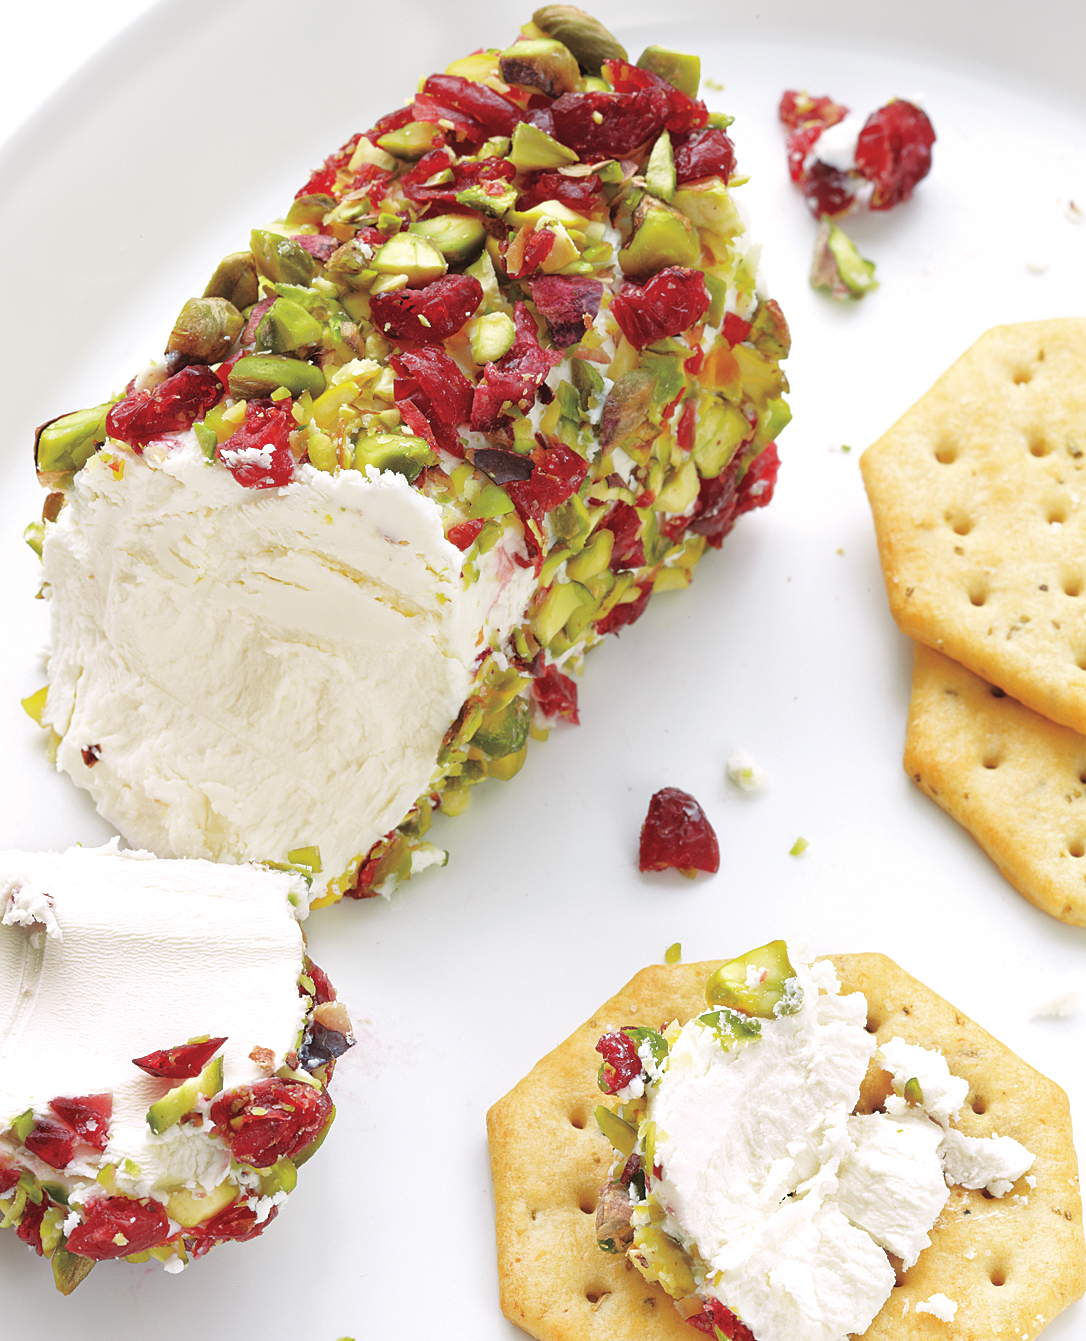 Goat Cheese With Pistachios and Cranberries